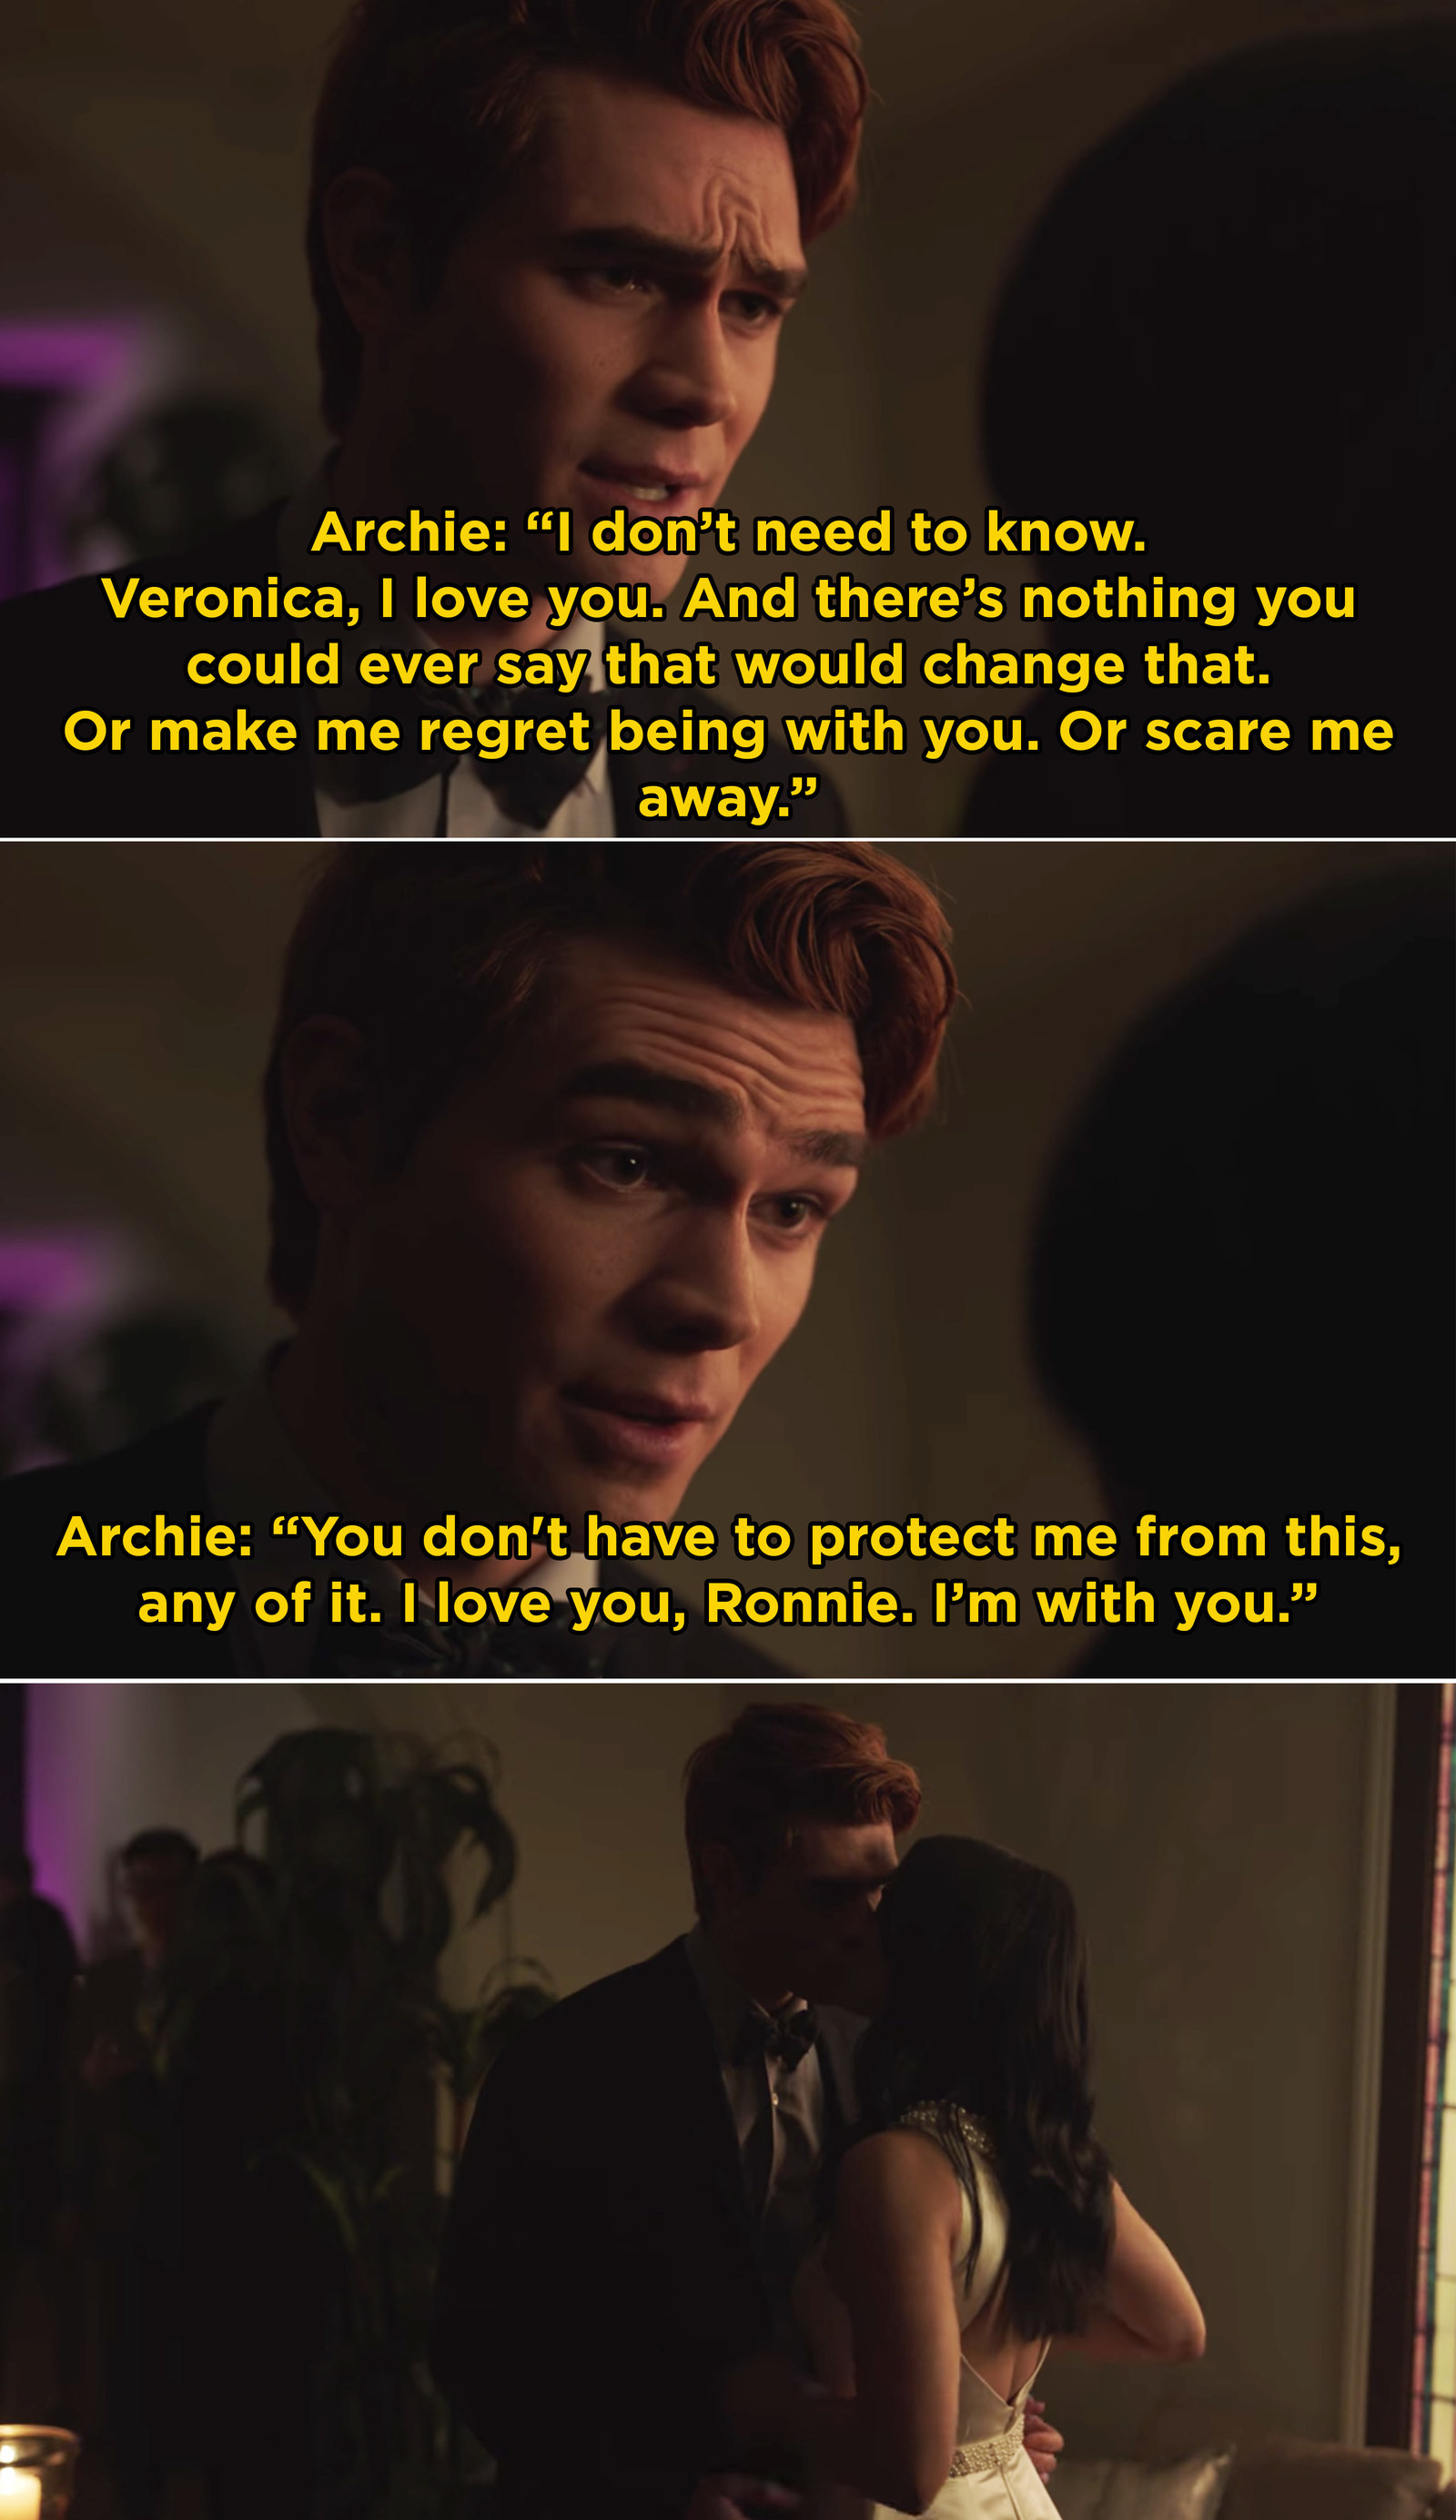 Also in  Riverdale , Archie told Veronica that he loved her and wasn't going anywhere.